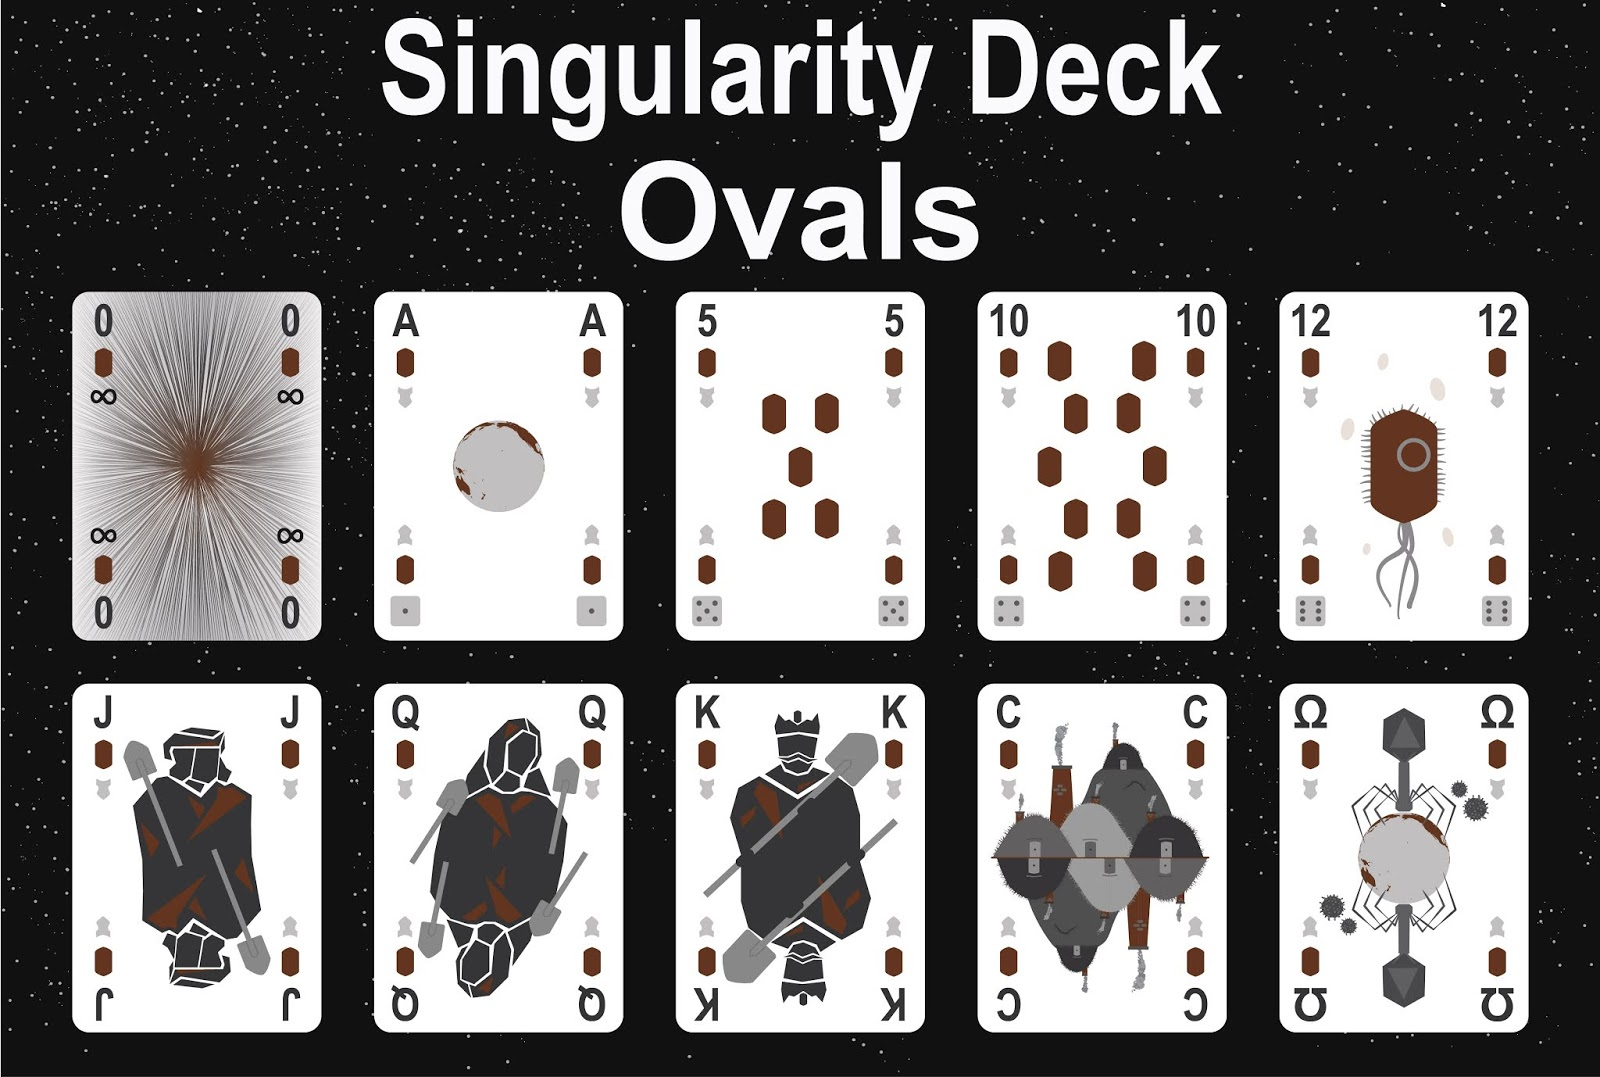 The Singularity Deck - Ovals Art